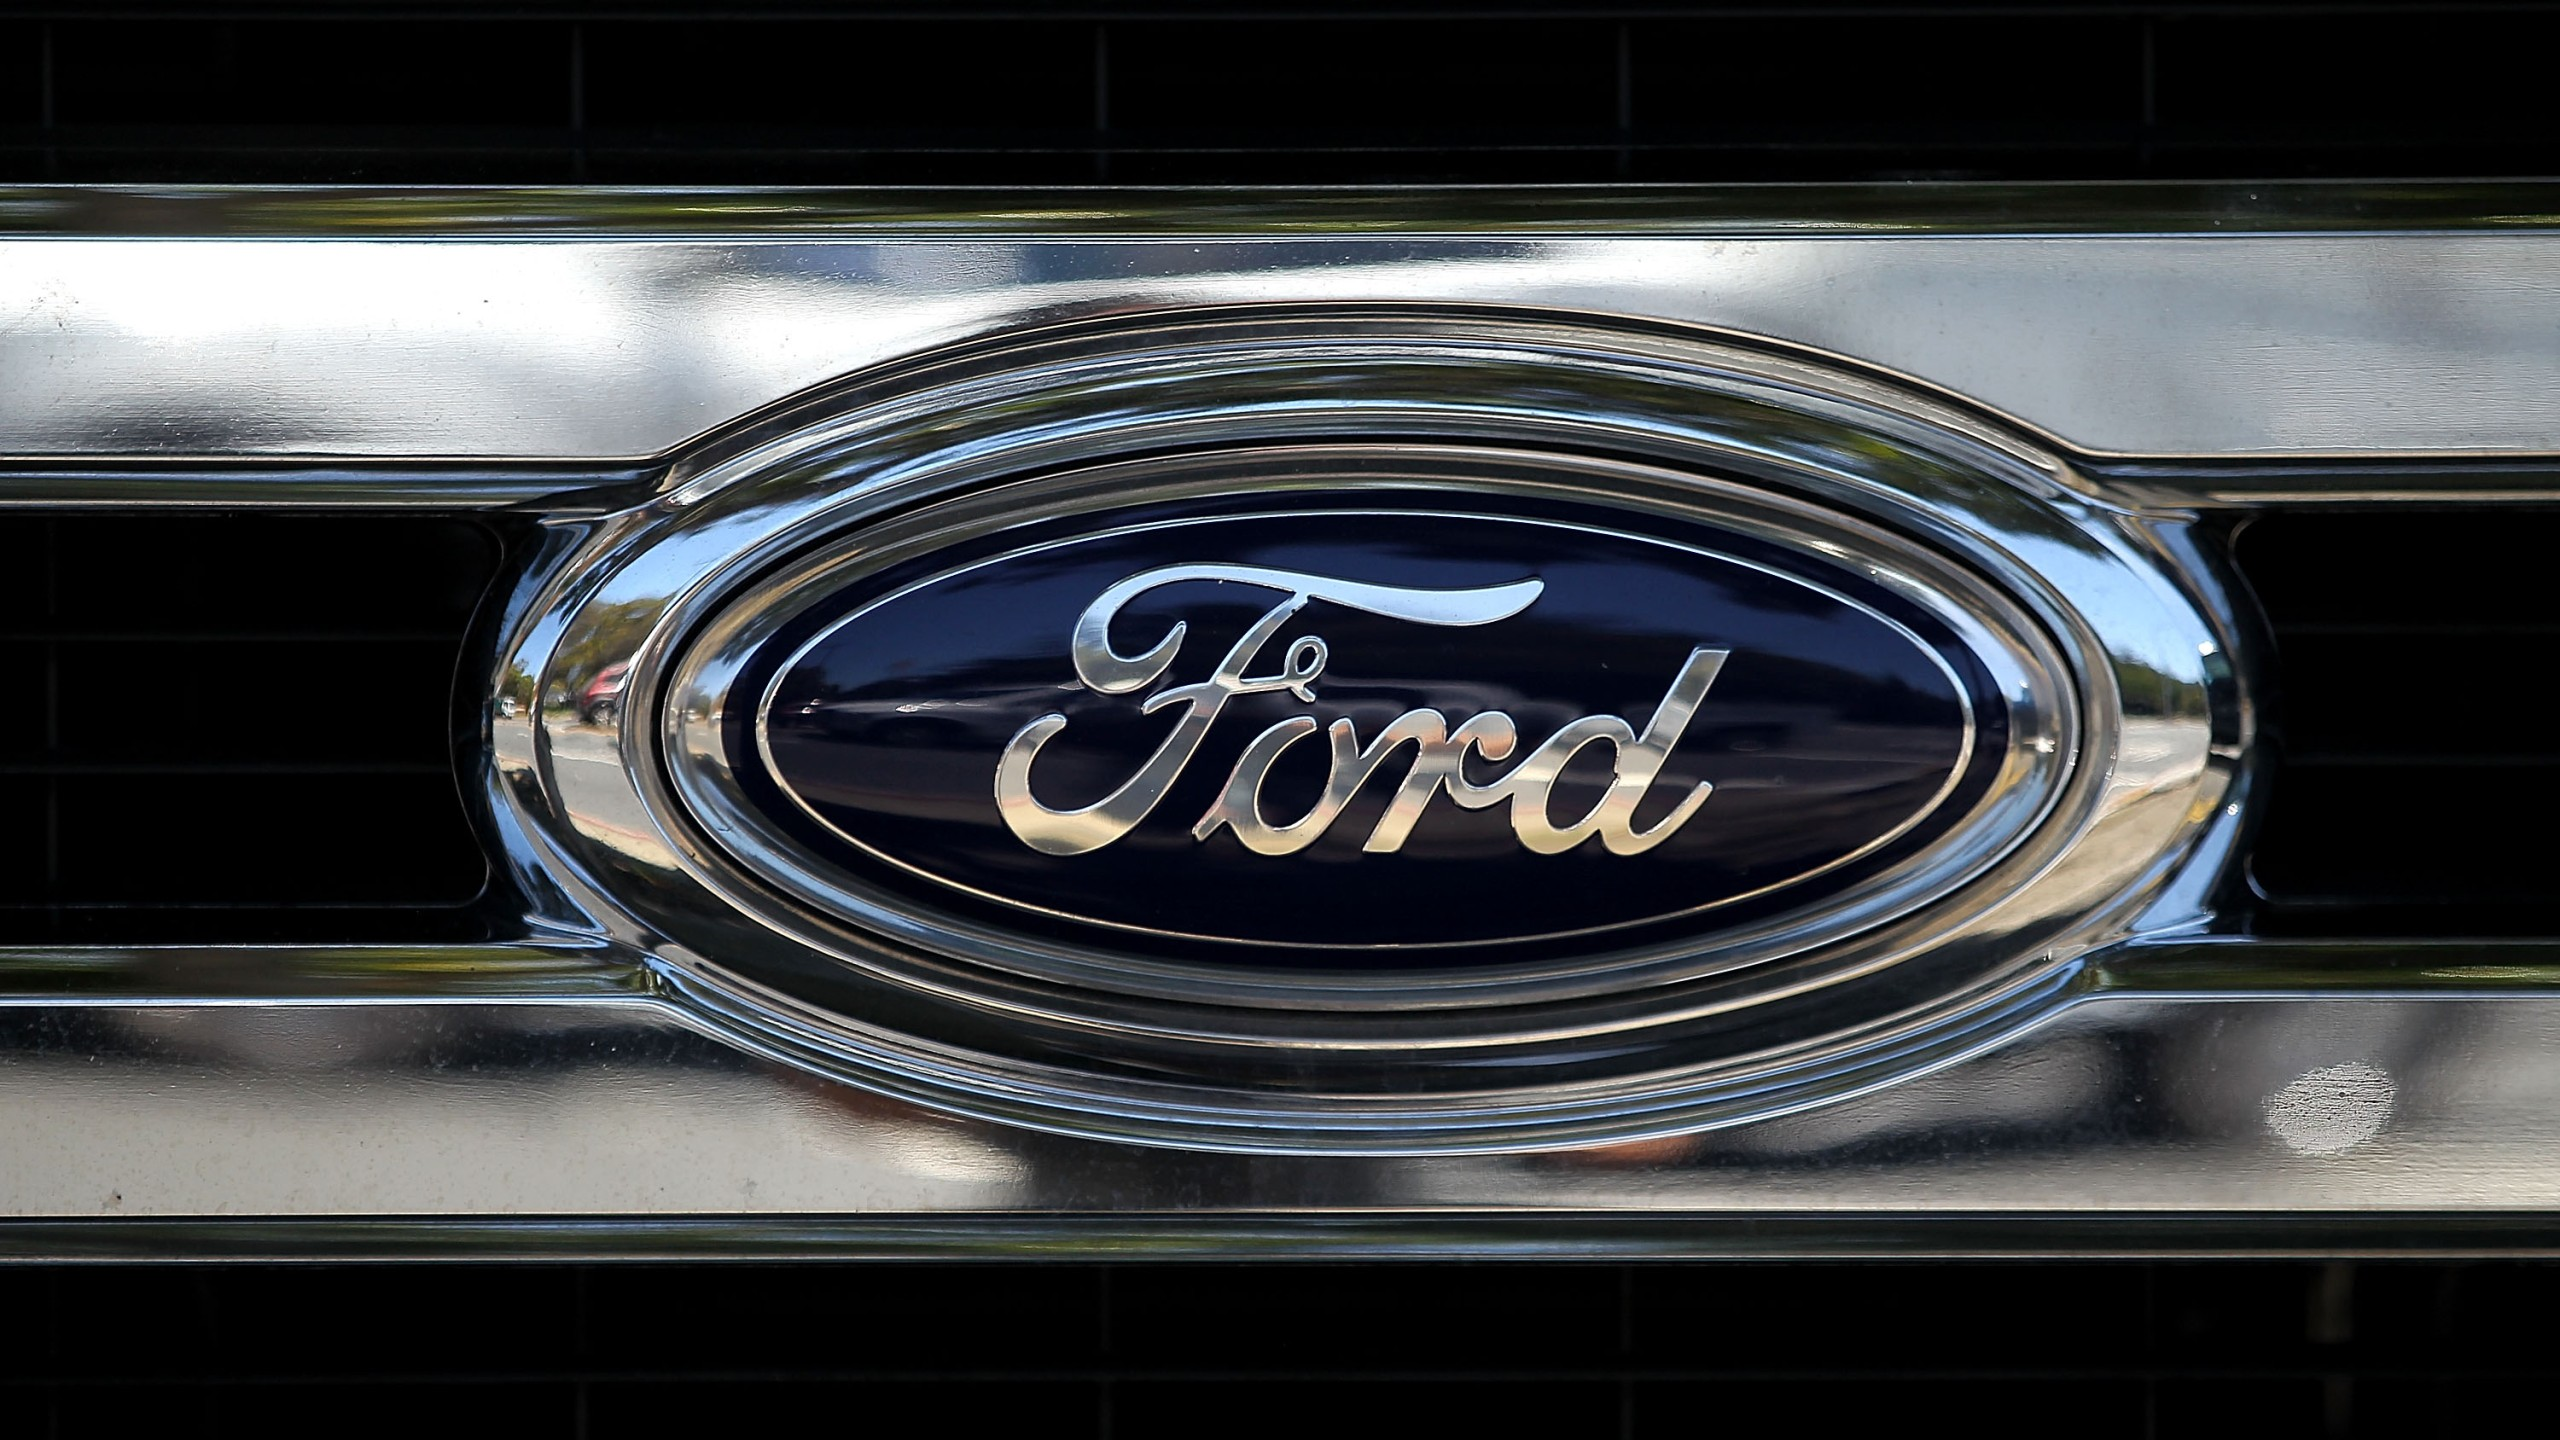 The Ford logo is displayed on the front of a brand new Ford truck at Serramonte Ford on July 28, 2015 in Colma. (Credit: Justin Sullivan/Getty Images)